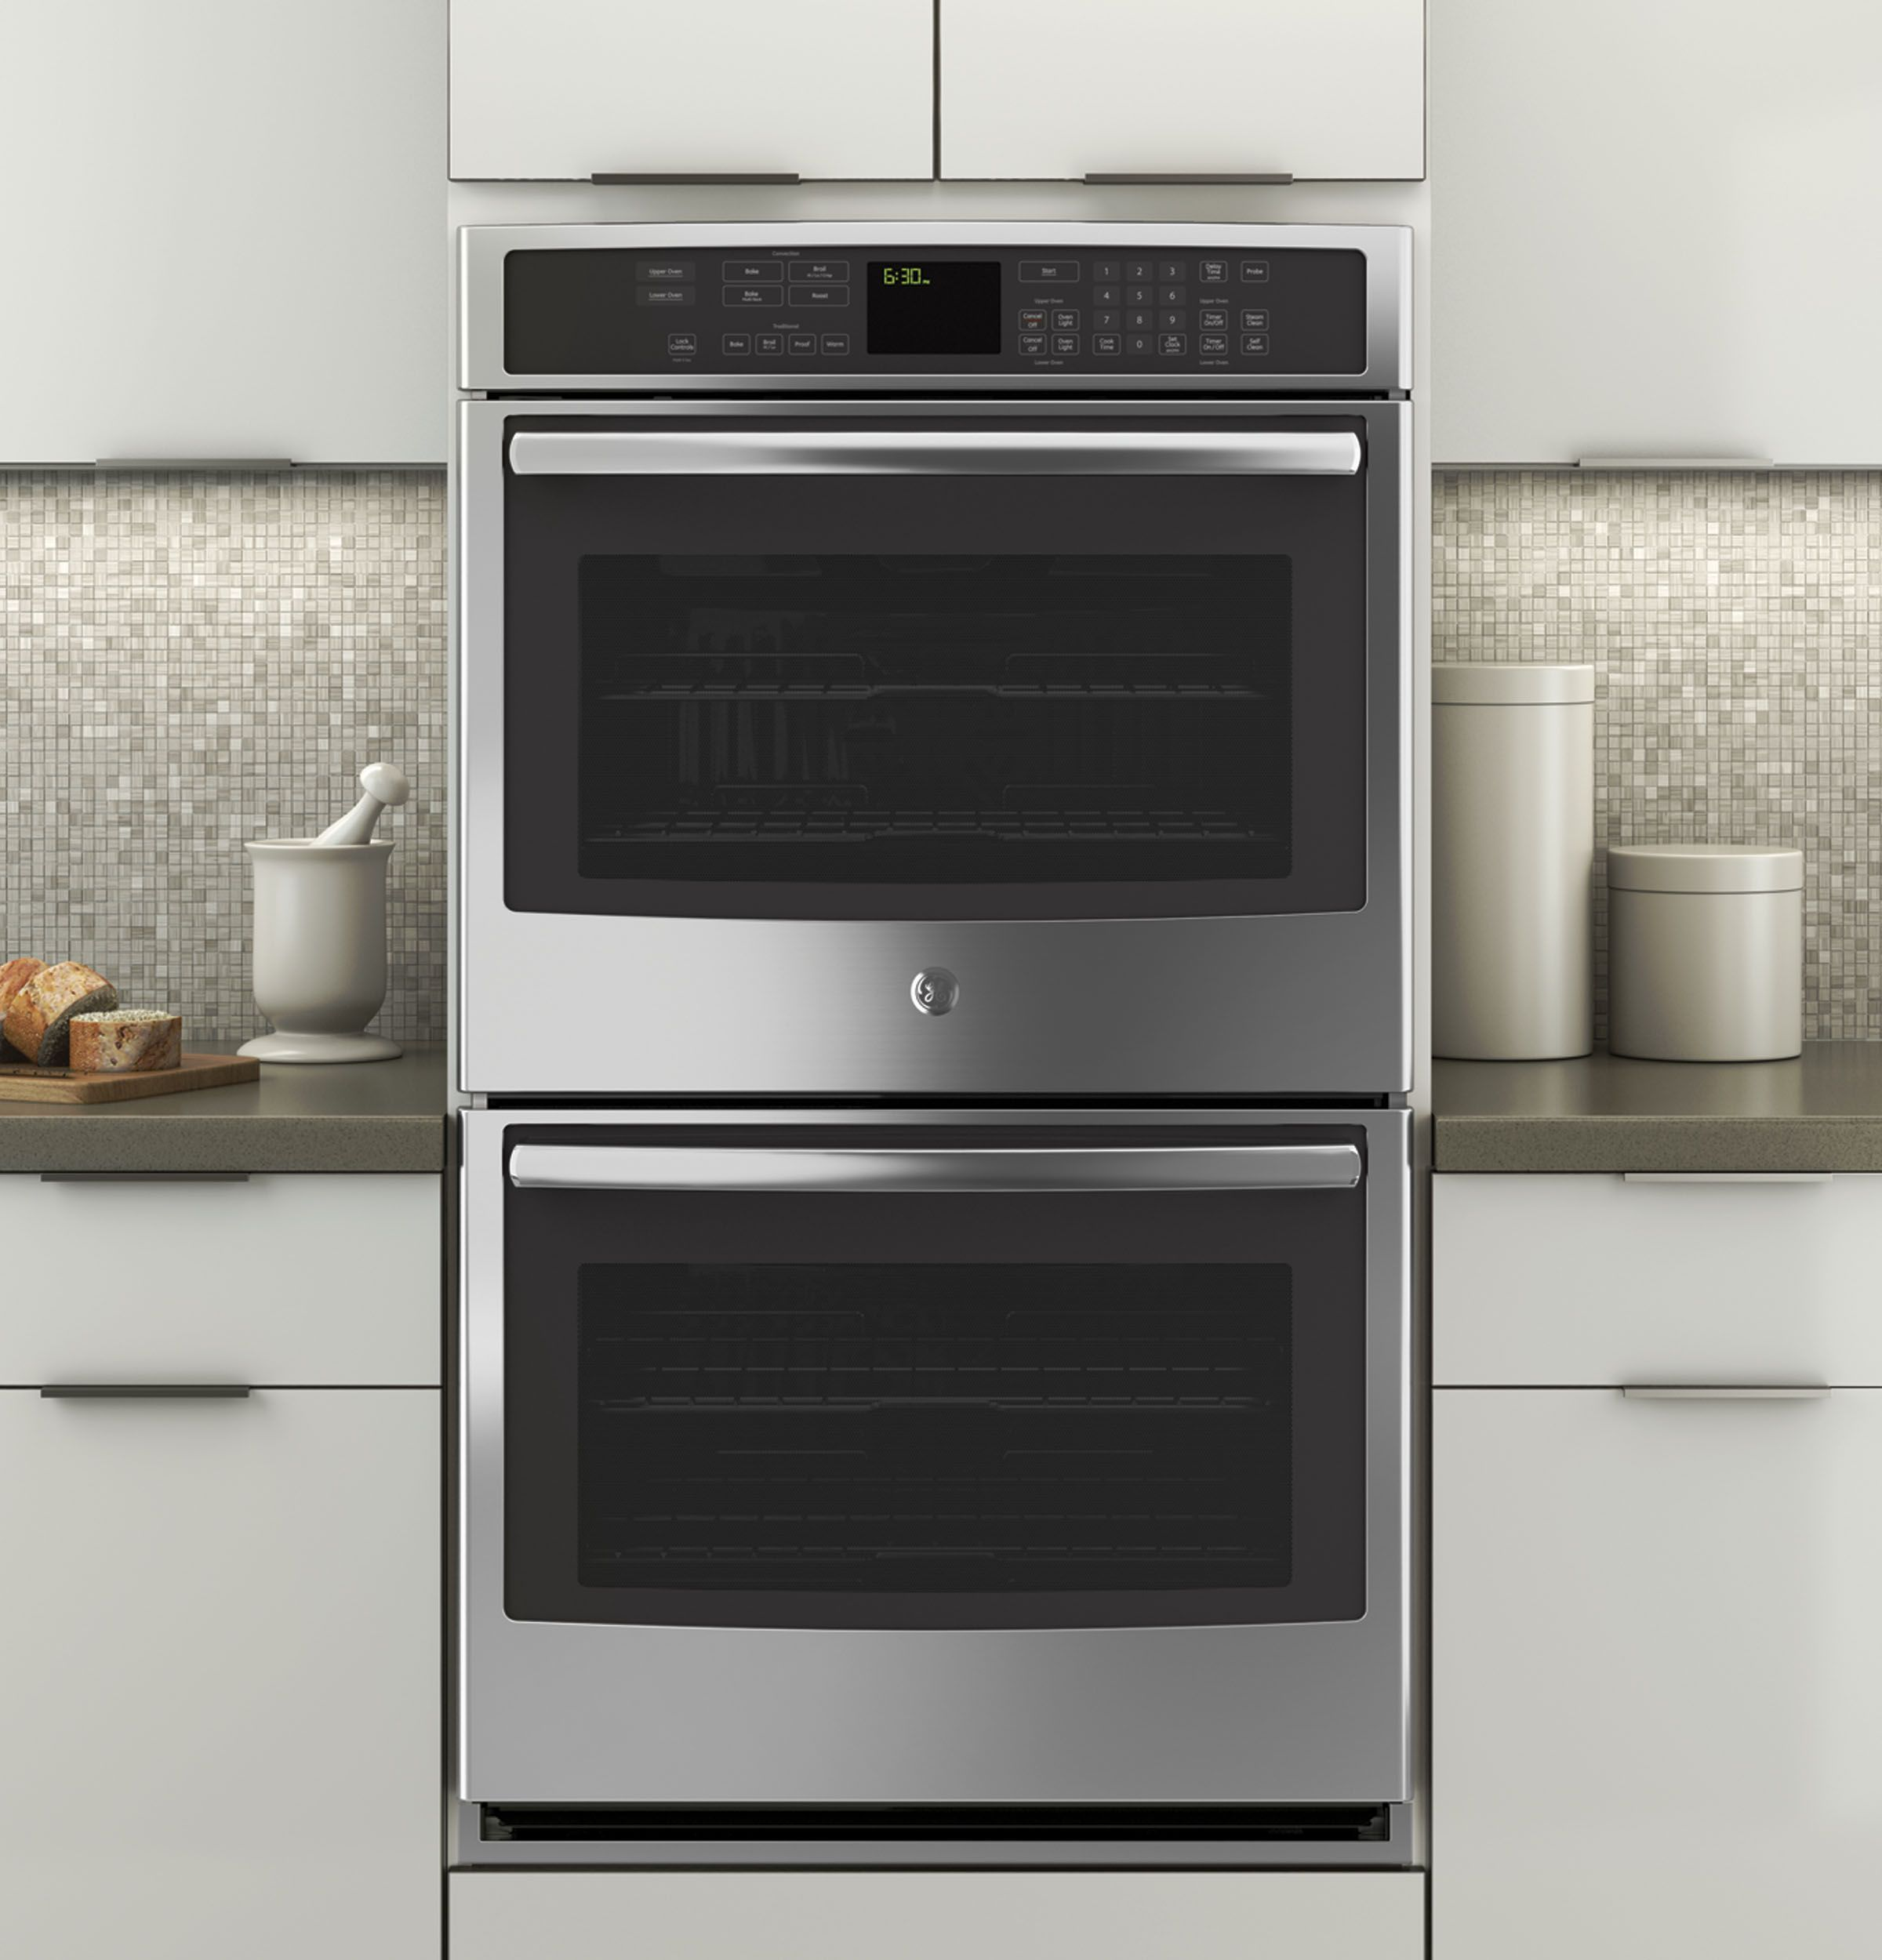 Pt7550sfss Ge Profile Series 30 Built In Double Wall Oven With